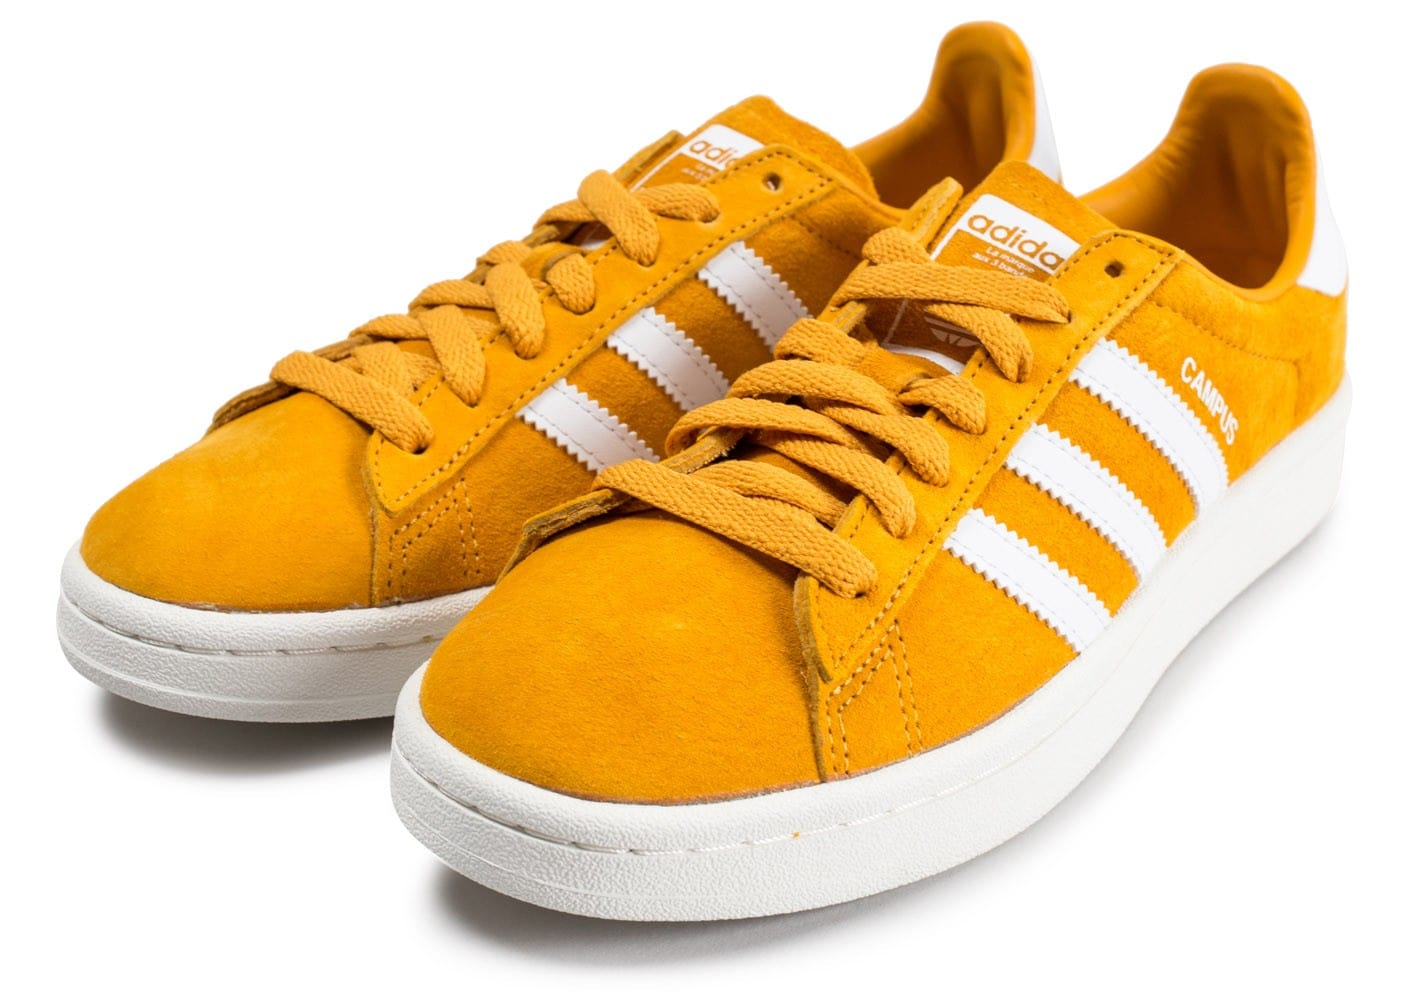 adidas campus jaune moutarde chaussures adidas chausport. Black Bedroom Furniture Sets. Home Design Ideas